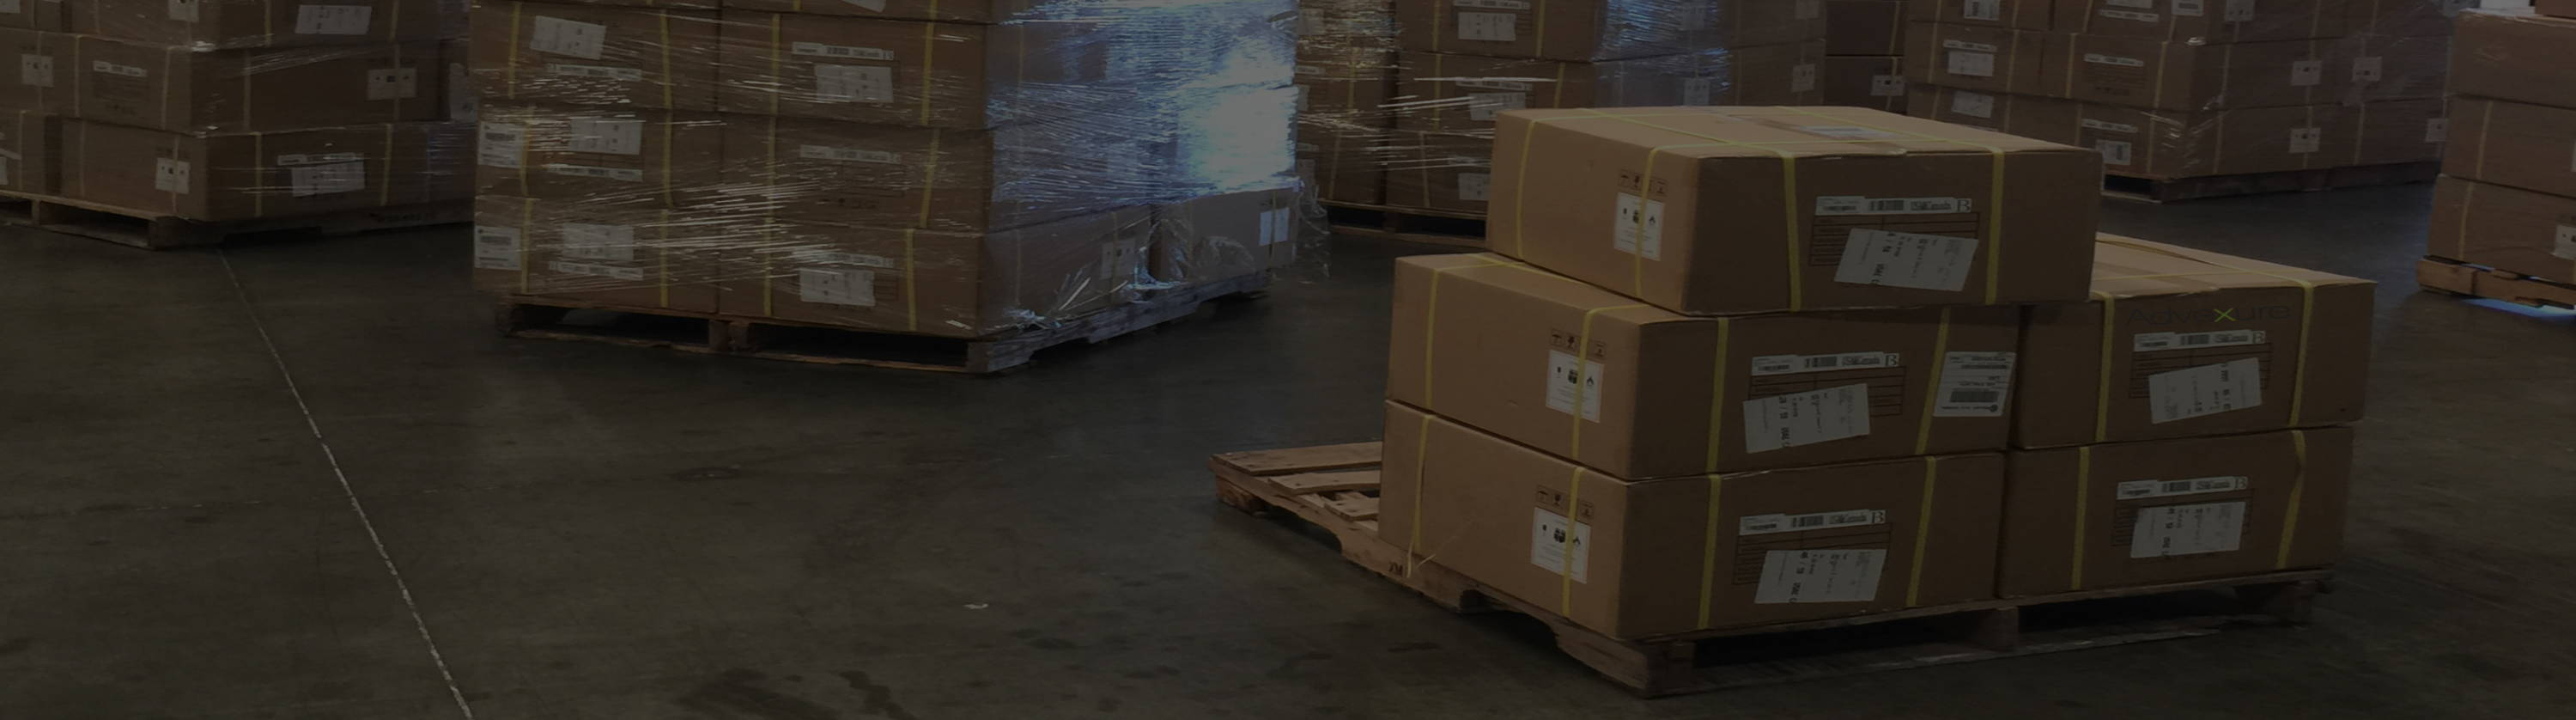 Advexure Warehouse